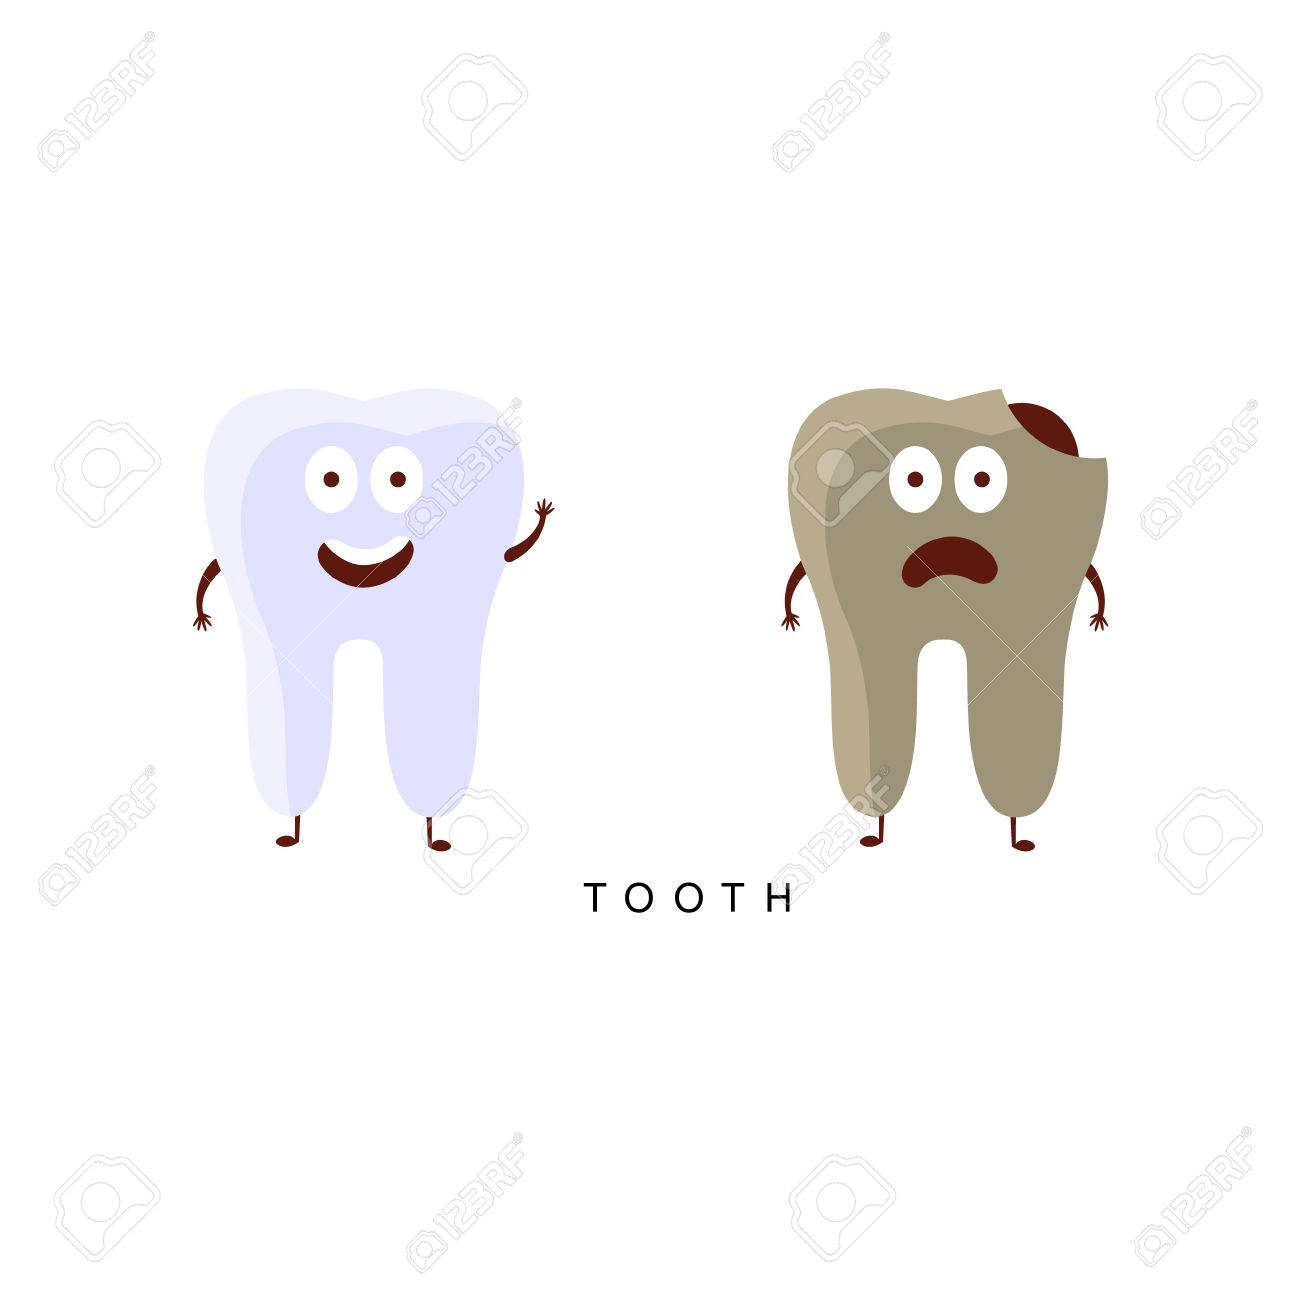 Healthy vs Unhealthy Tooth Infographic Illustration Humanized